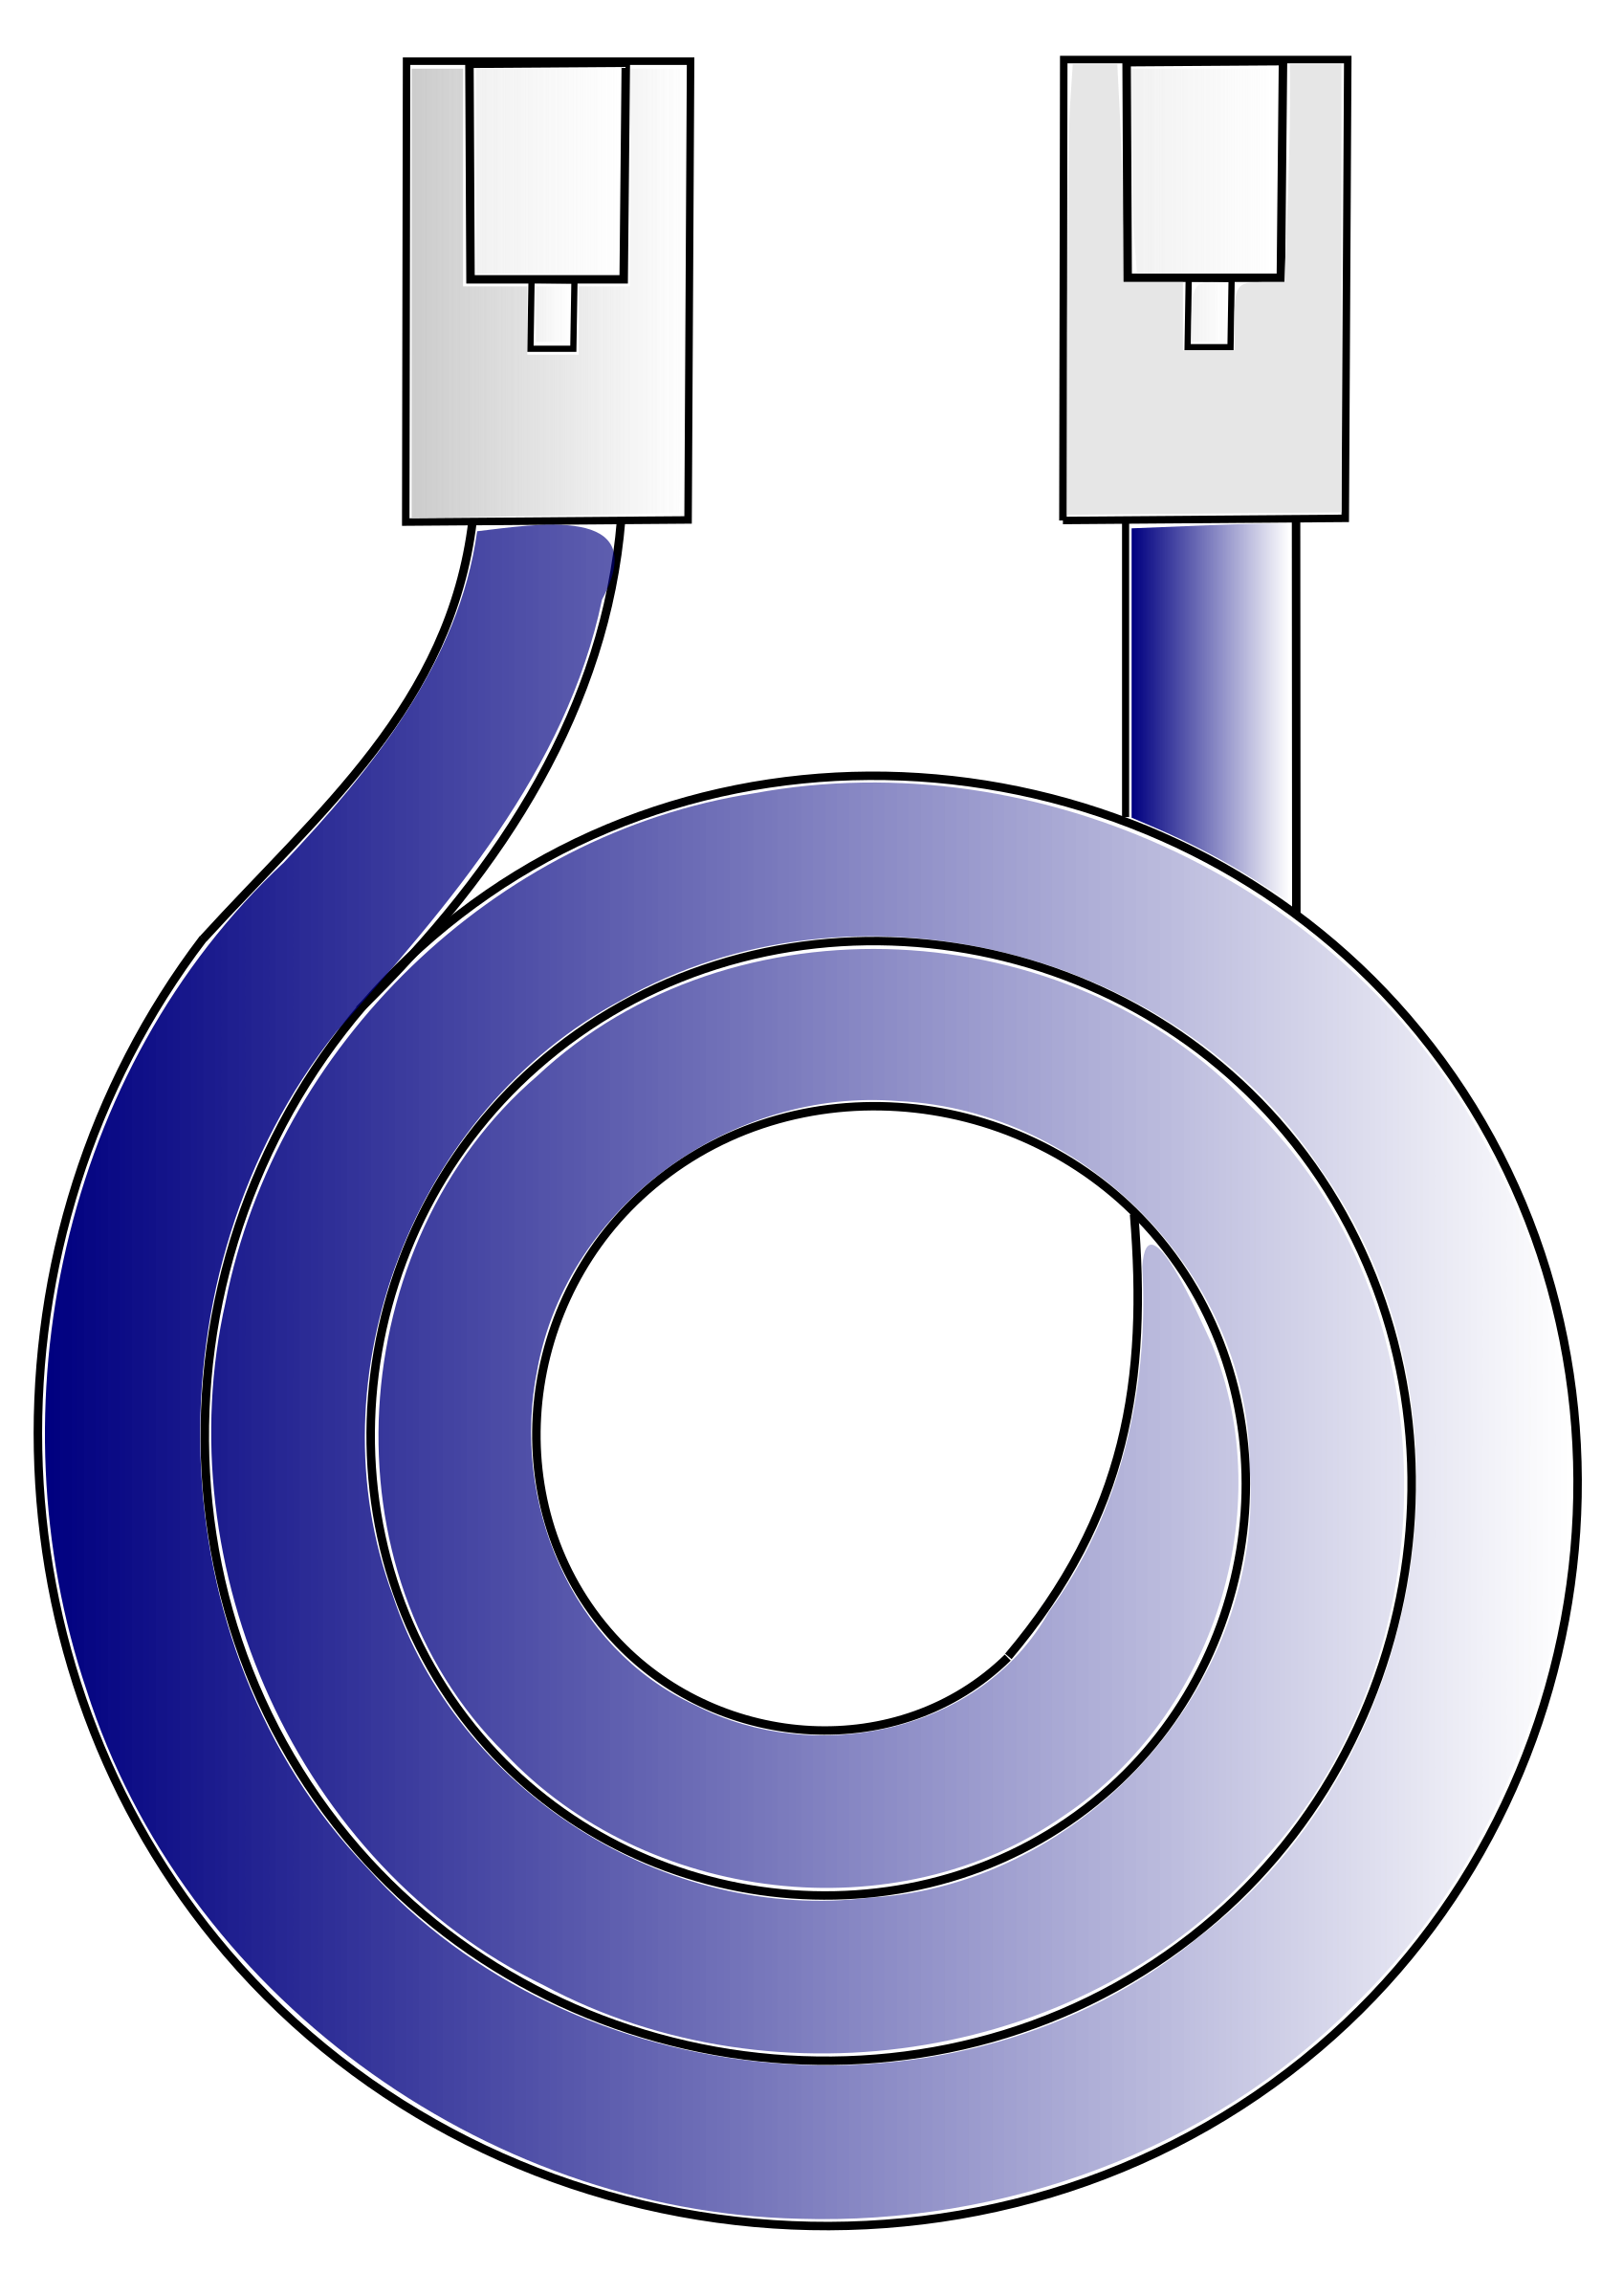 Big image png. Electronics clipart network cable